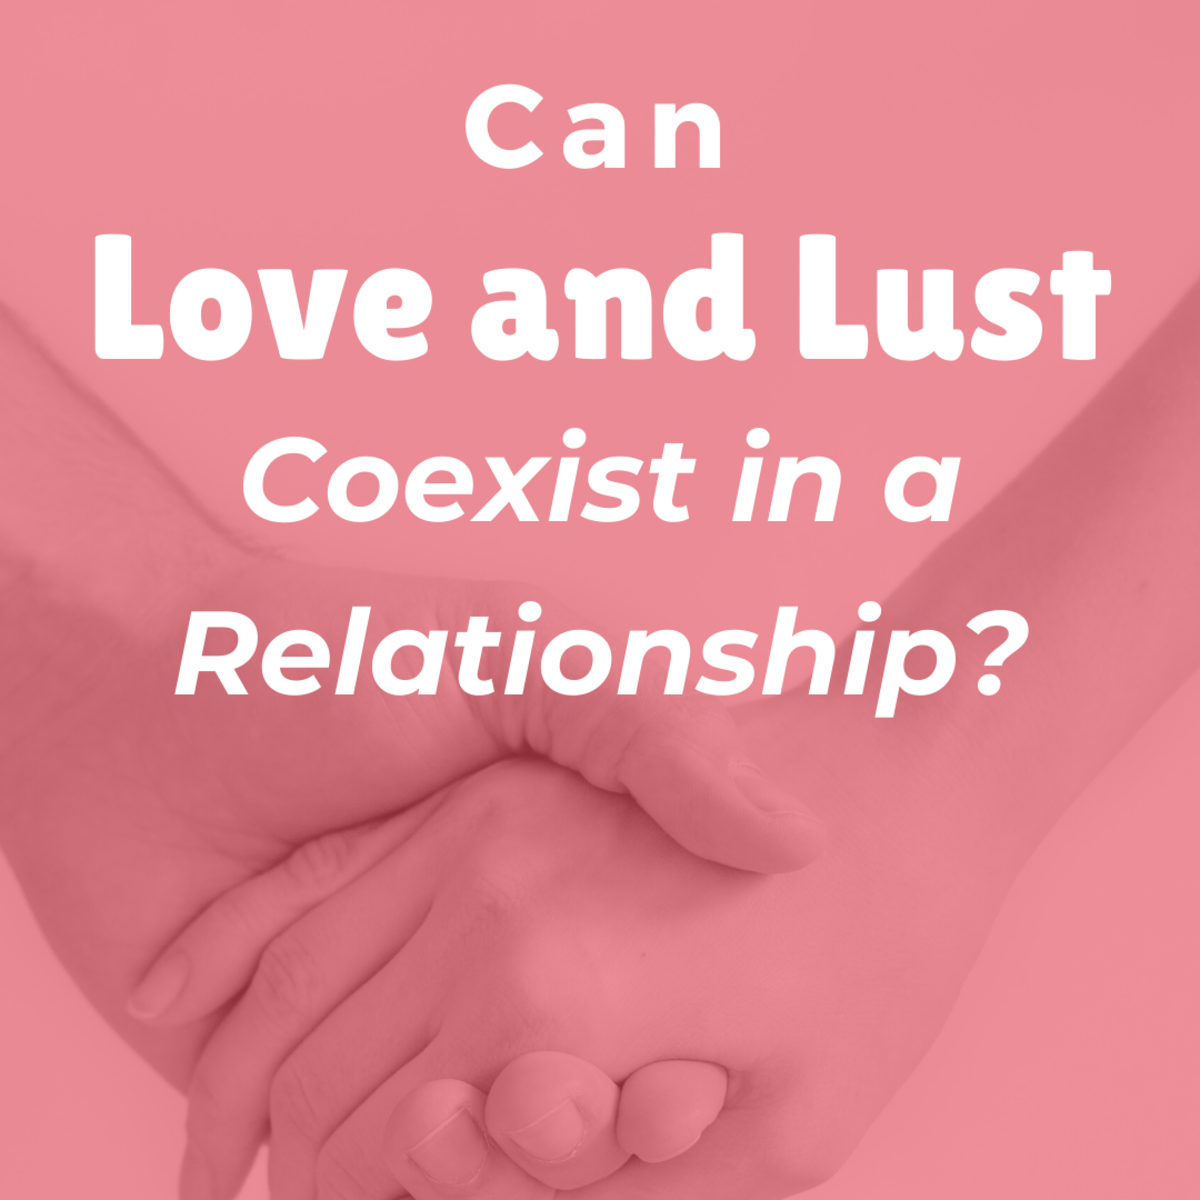 Can Love and Lust Coexist in a Relationship?